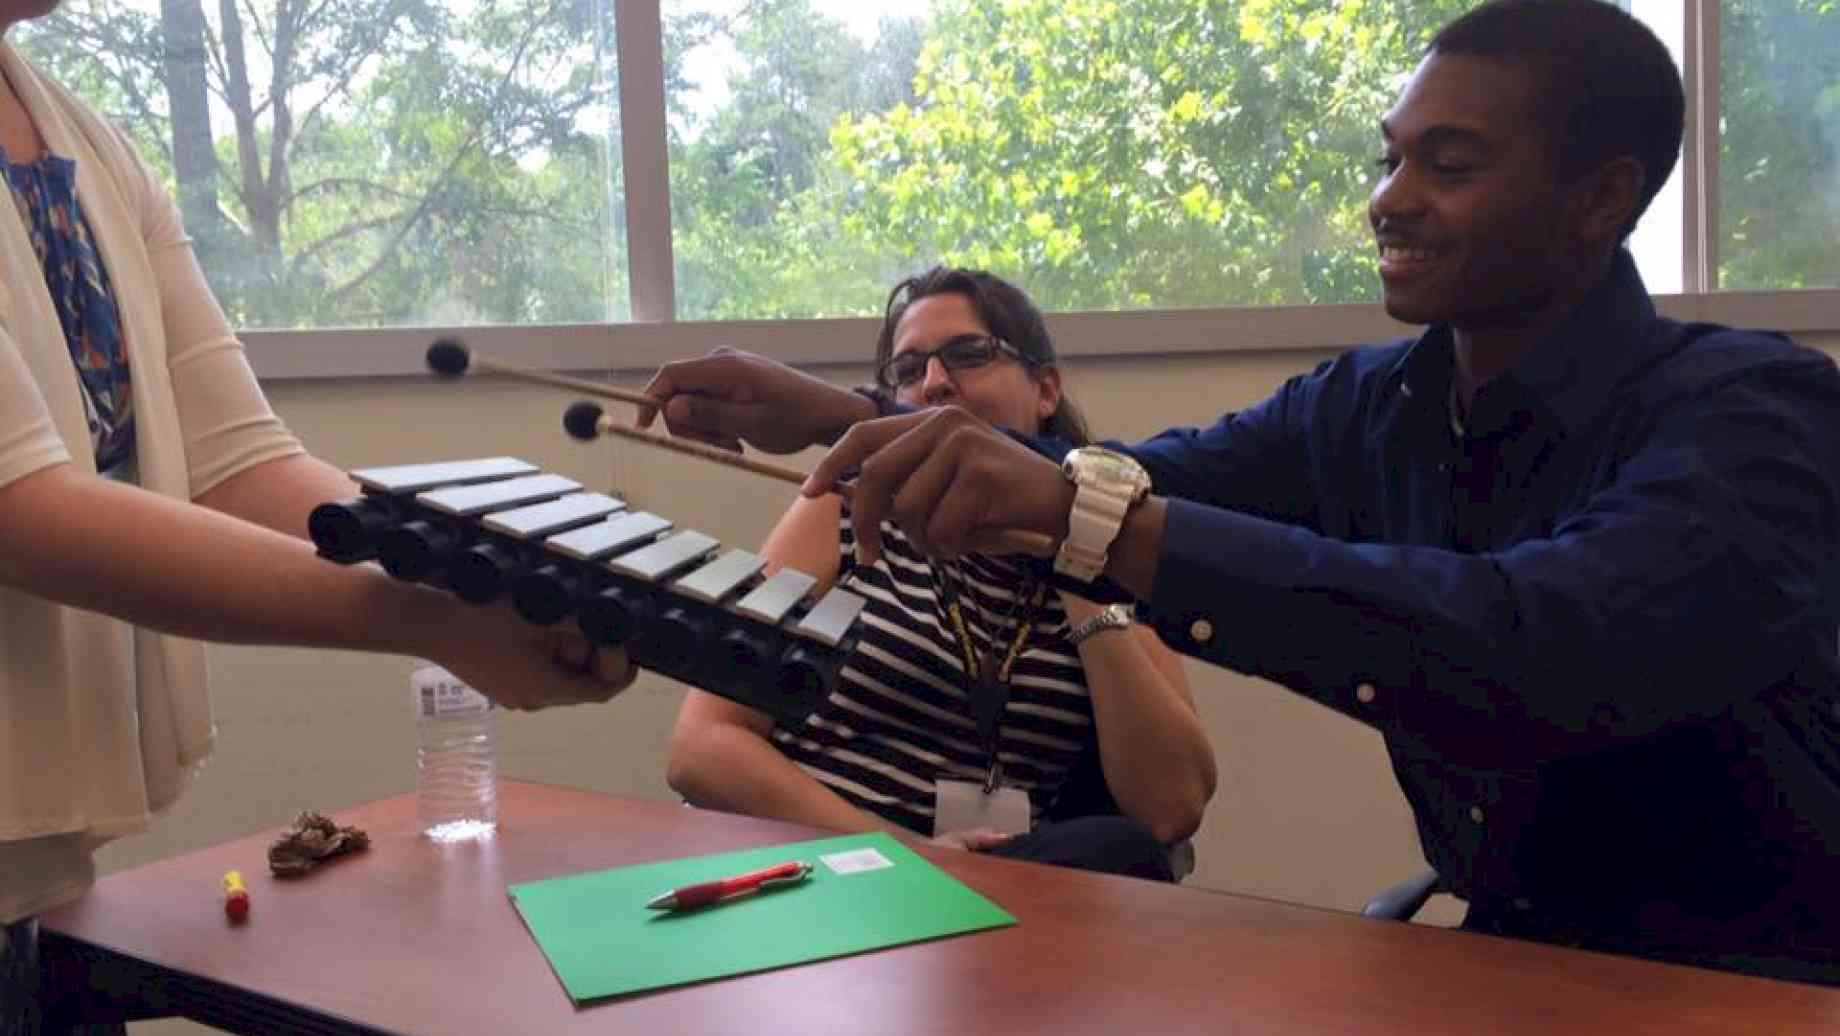 A musician-in-residence demonstrates simple instruments that they use in the hospital for bedside visits.